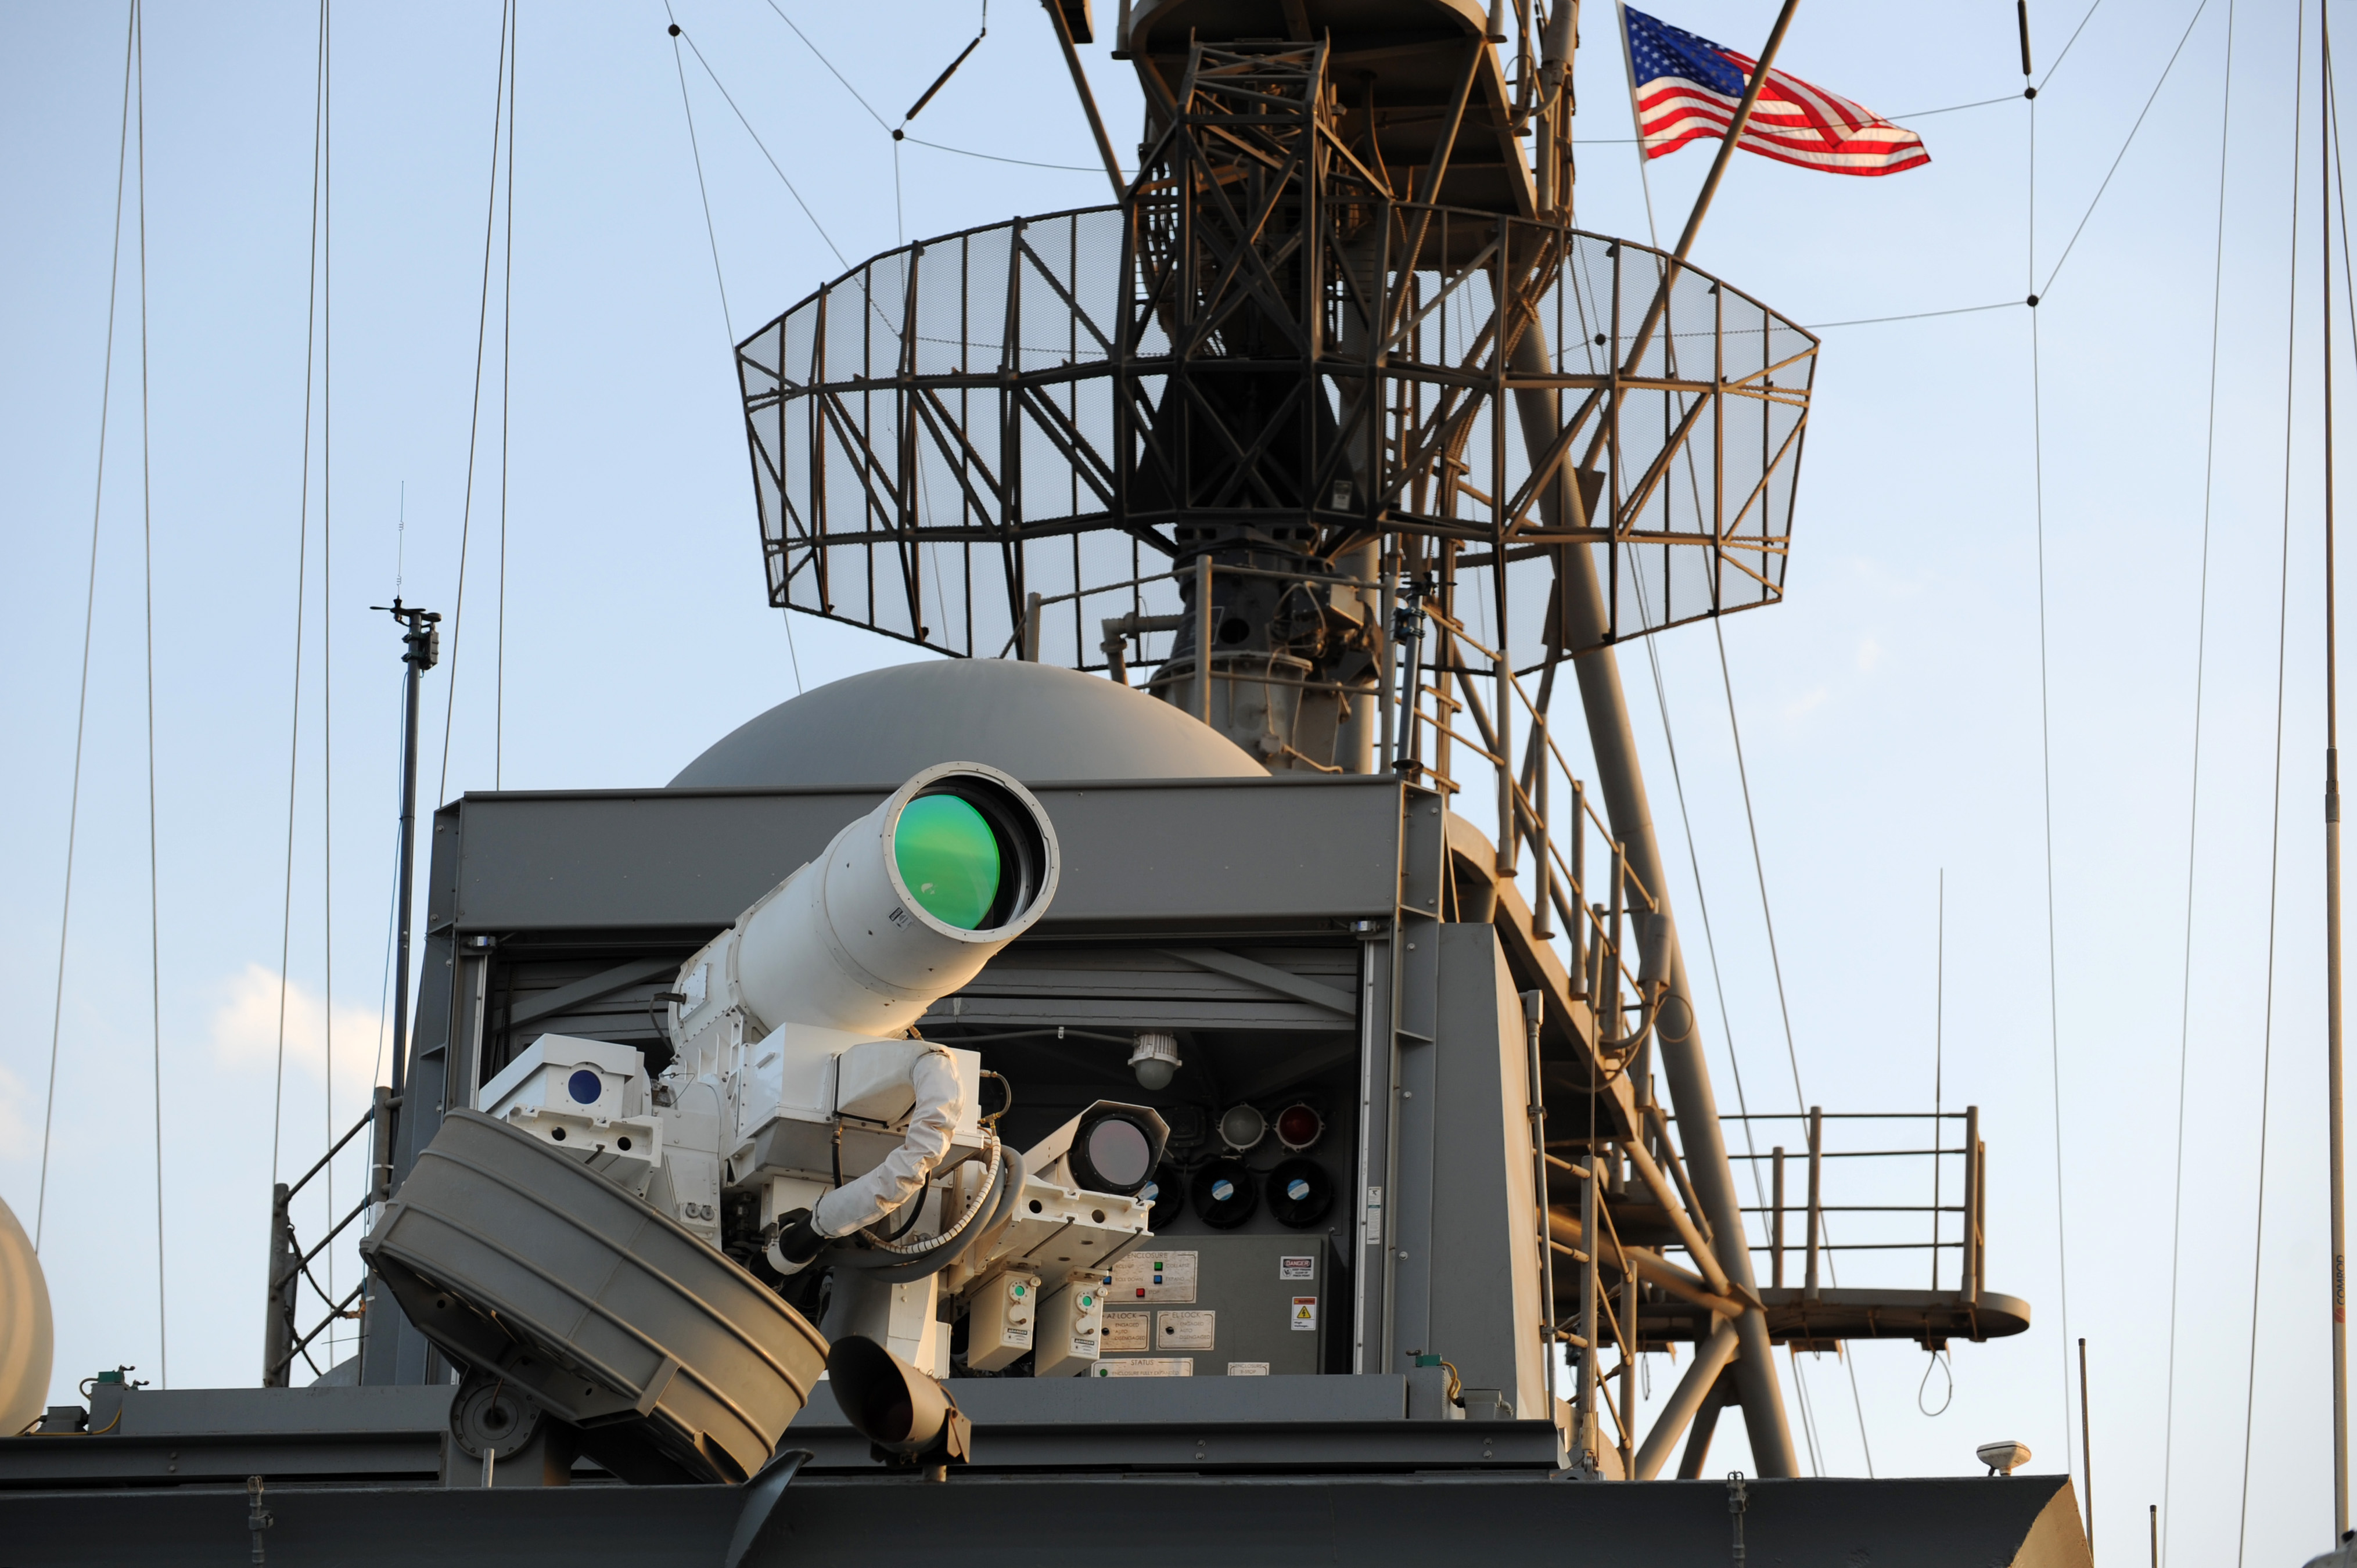 A US Navy Laser Weapons System demonstrator.